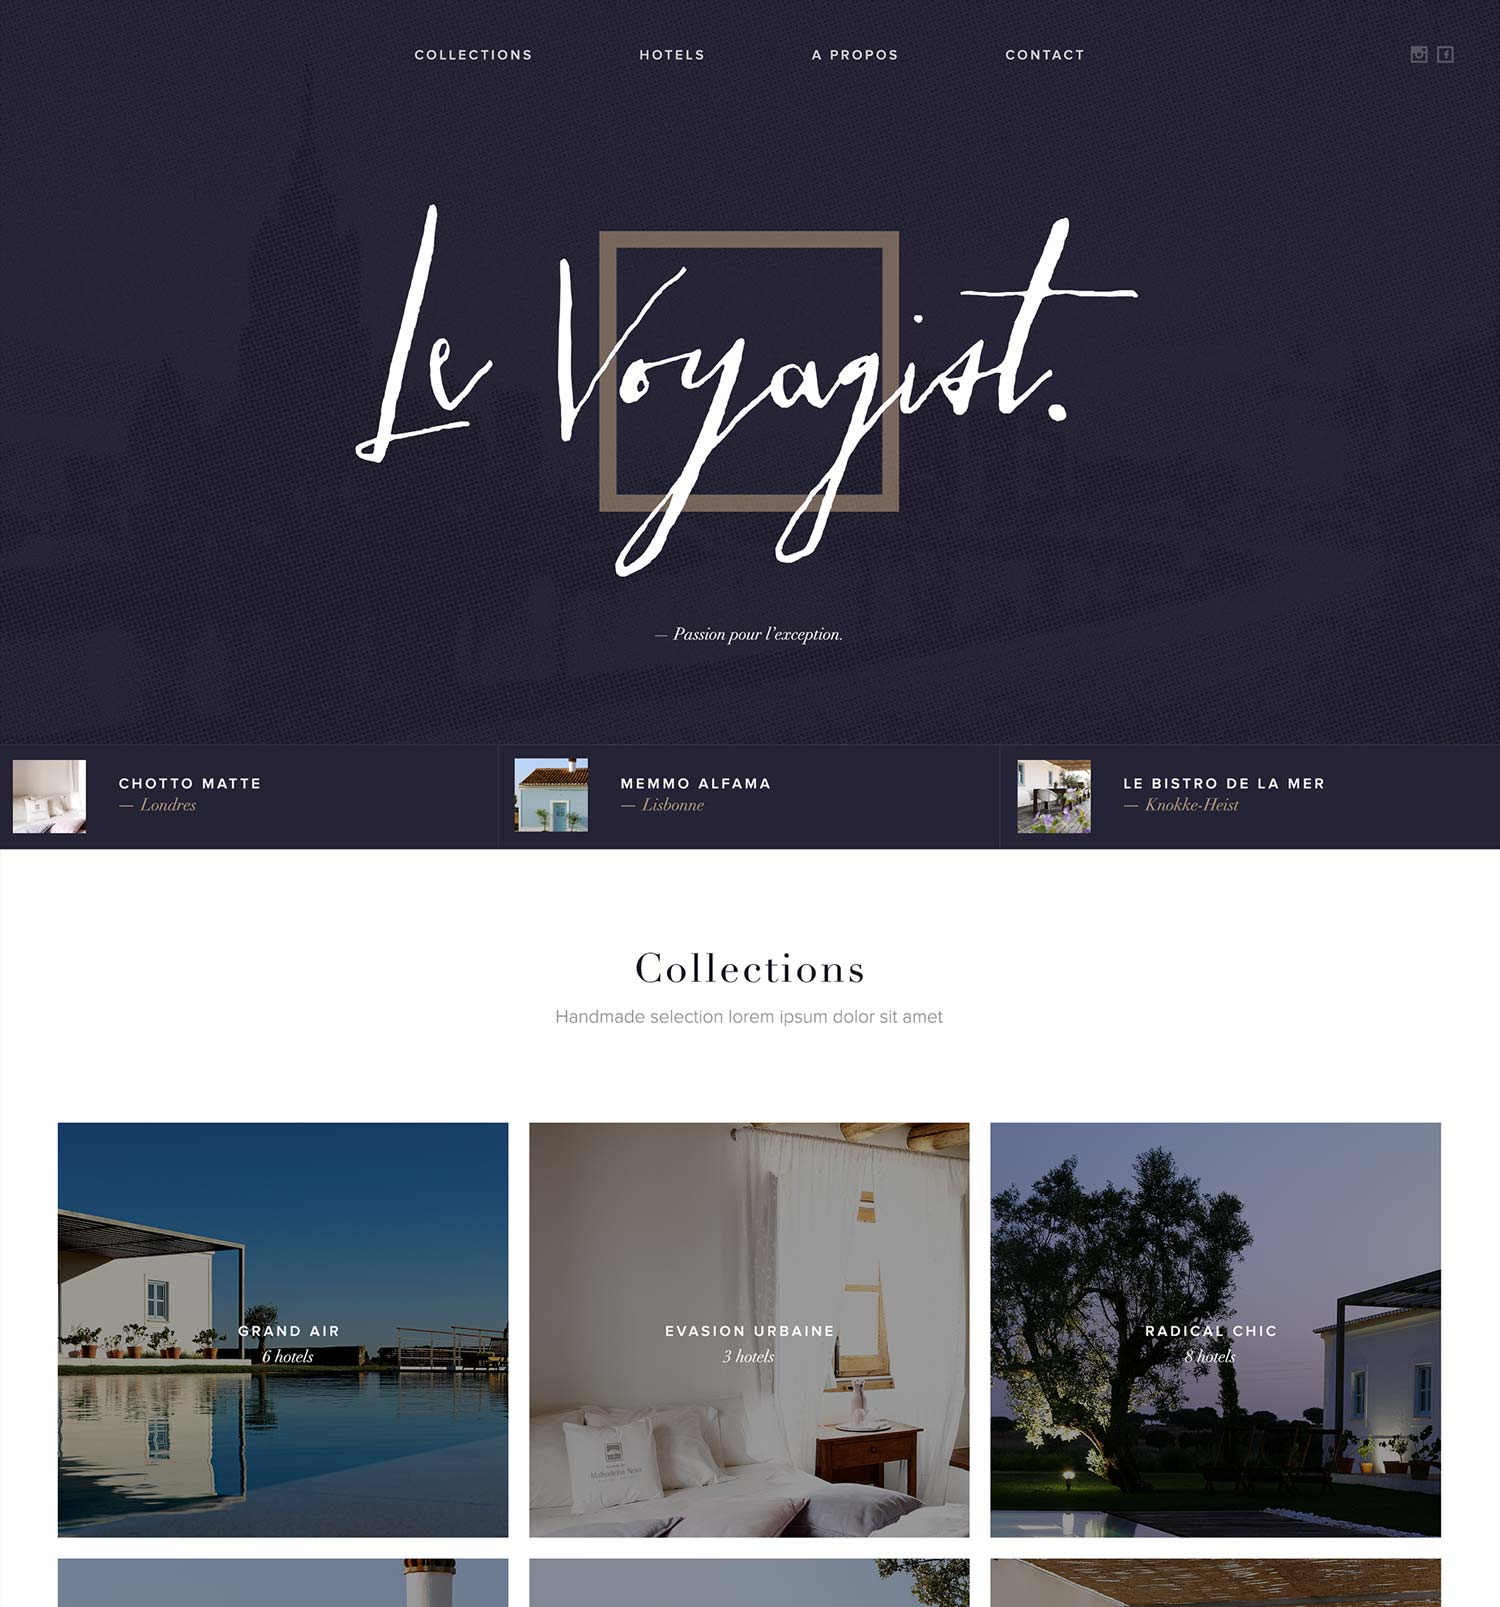 Overview of Le Voyagist's website - Reed